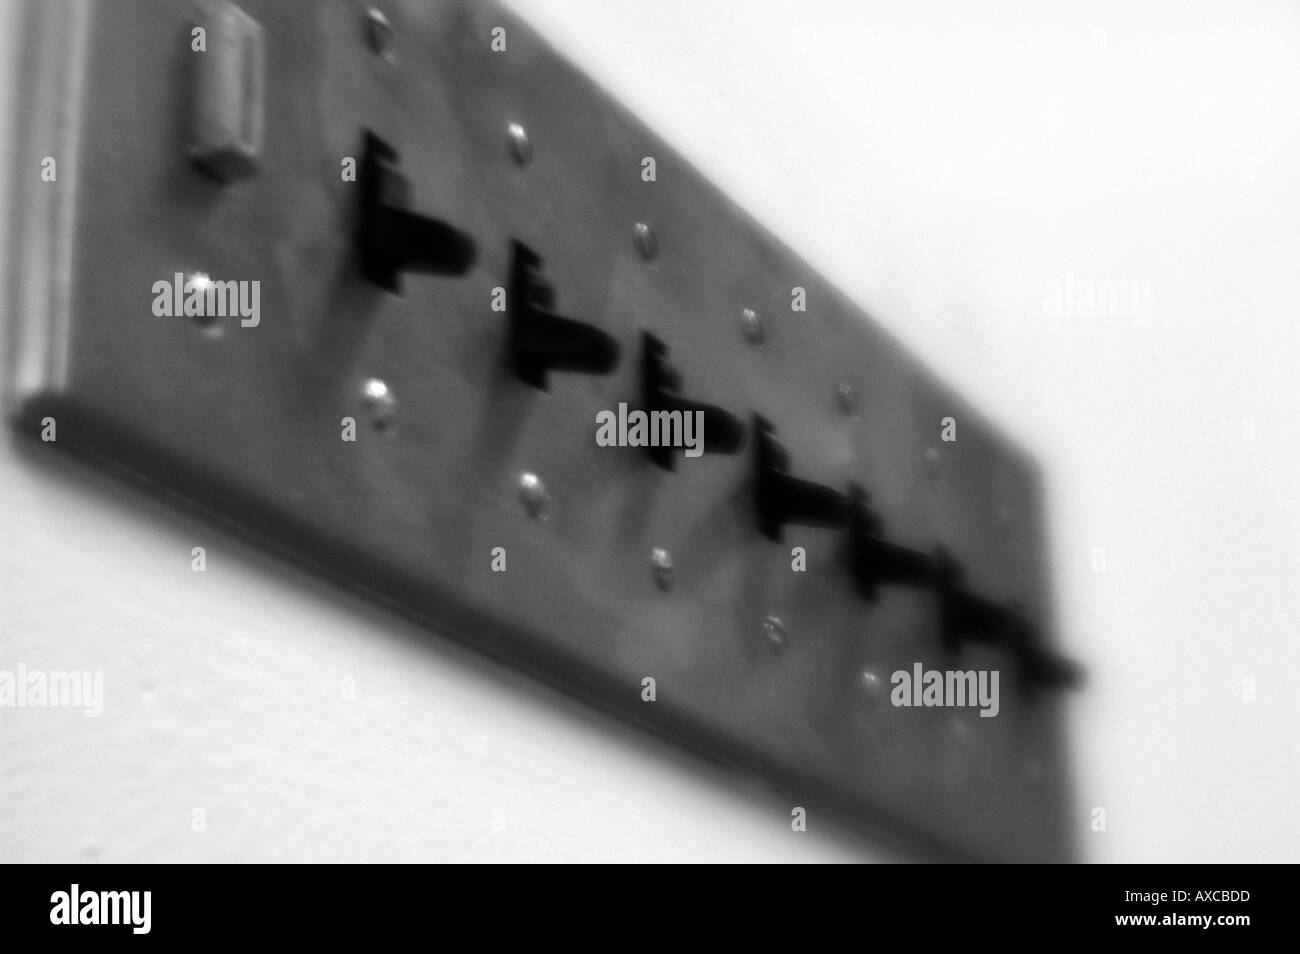 A row of ligh switches switch in an office - Stock Image